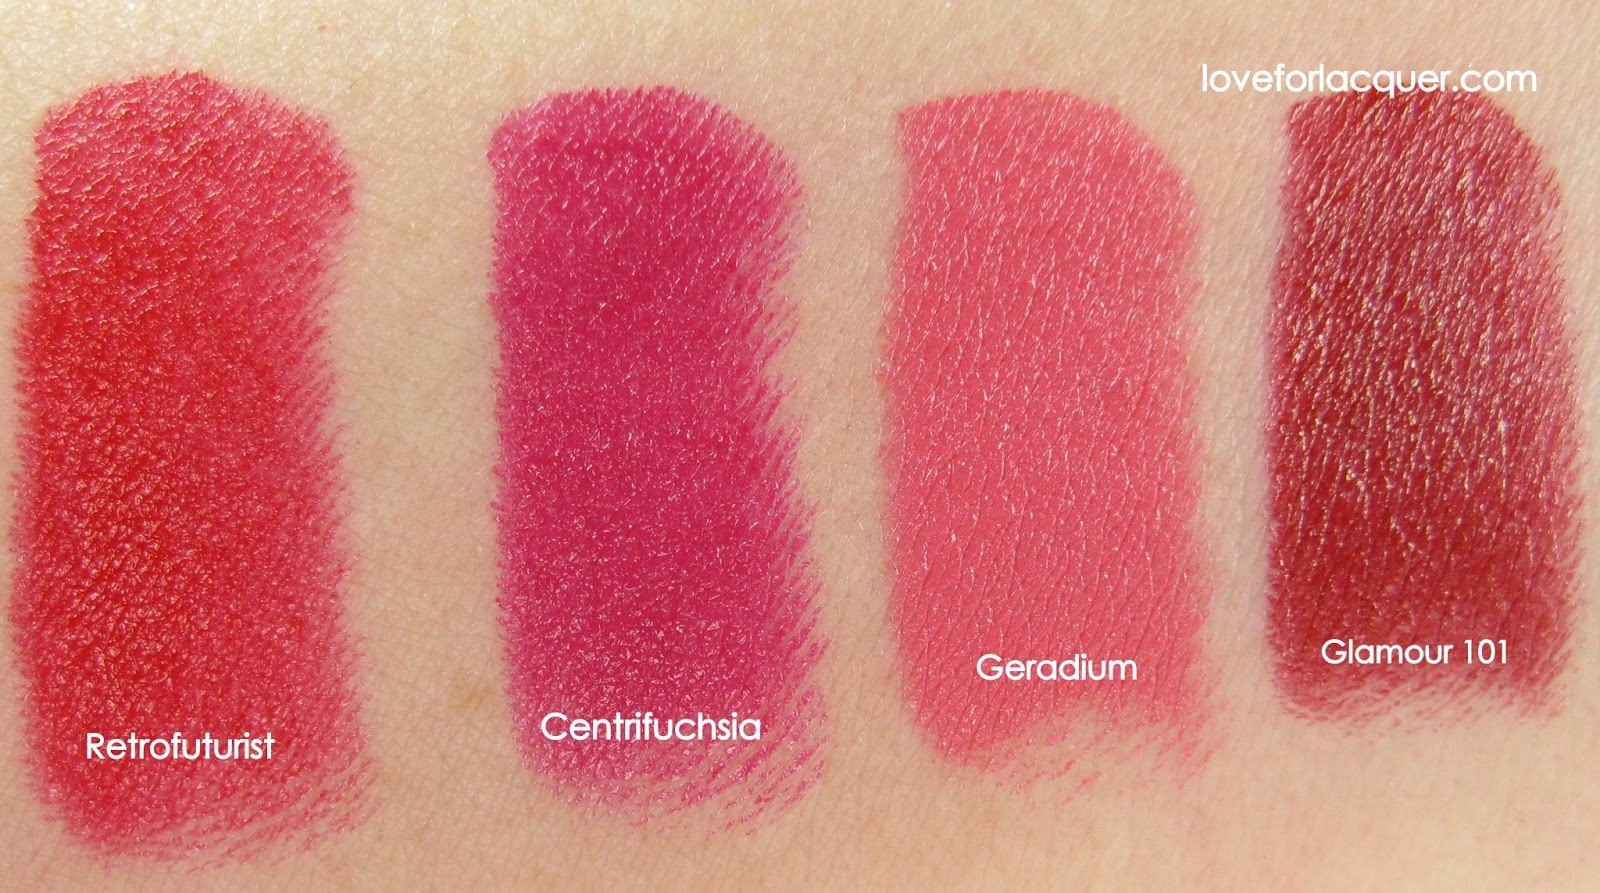 ♥ Lime Crime Lipstick Swatches & Review! (8 colors!) ♥ - Love ...